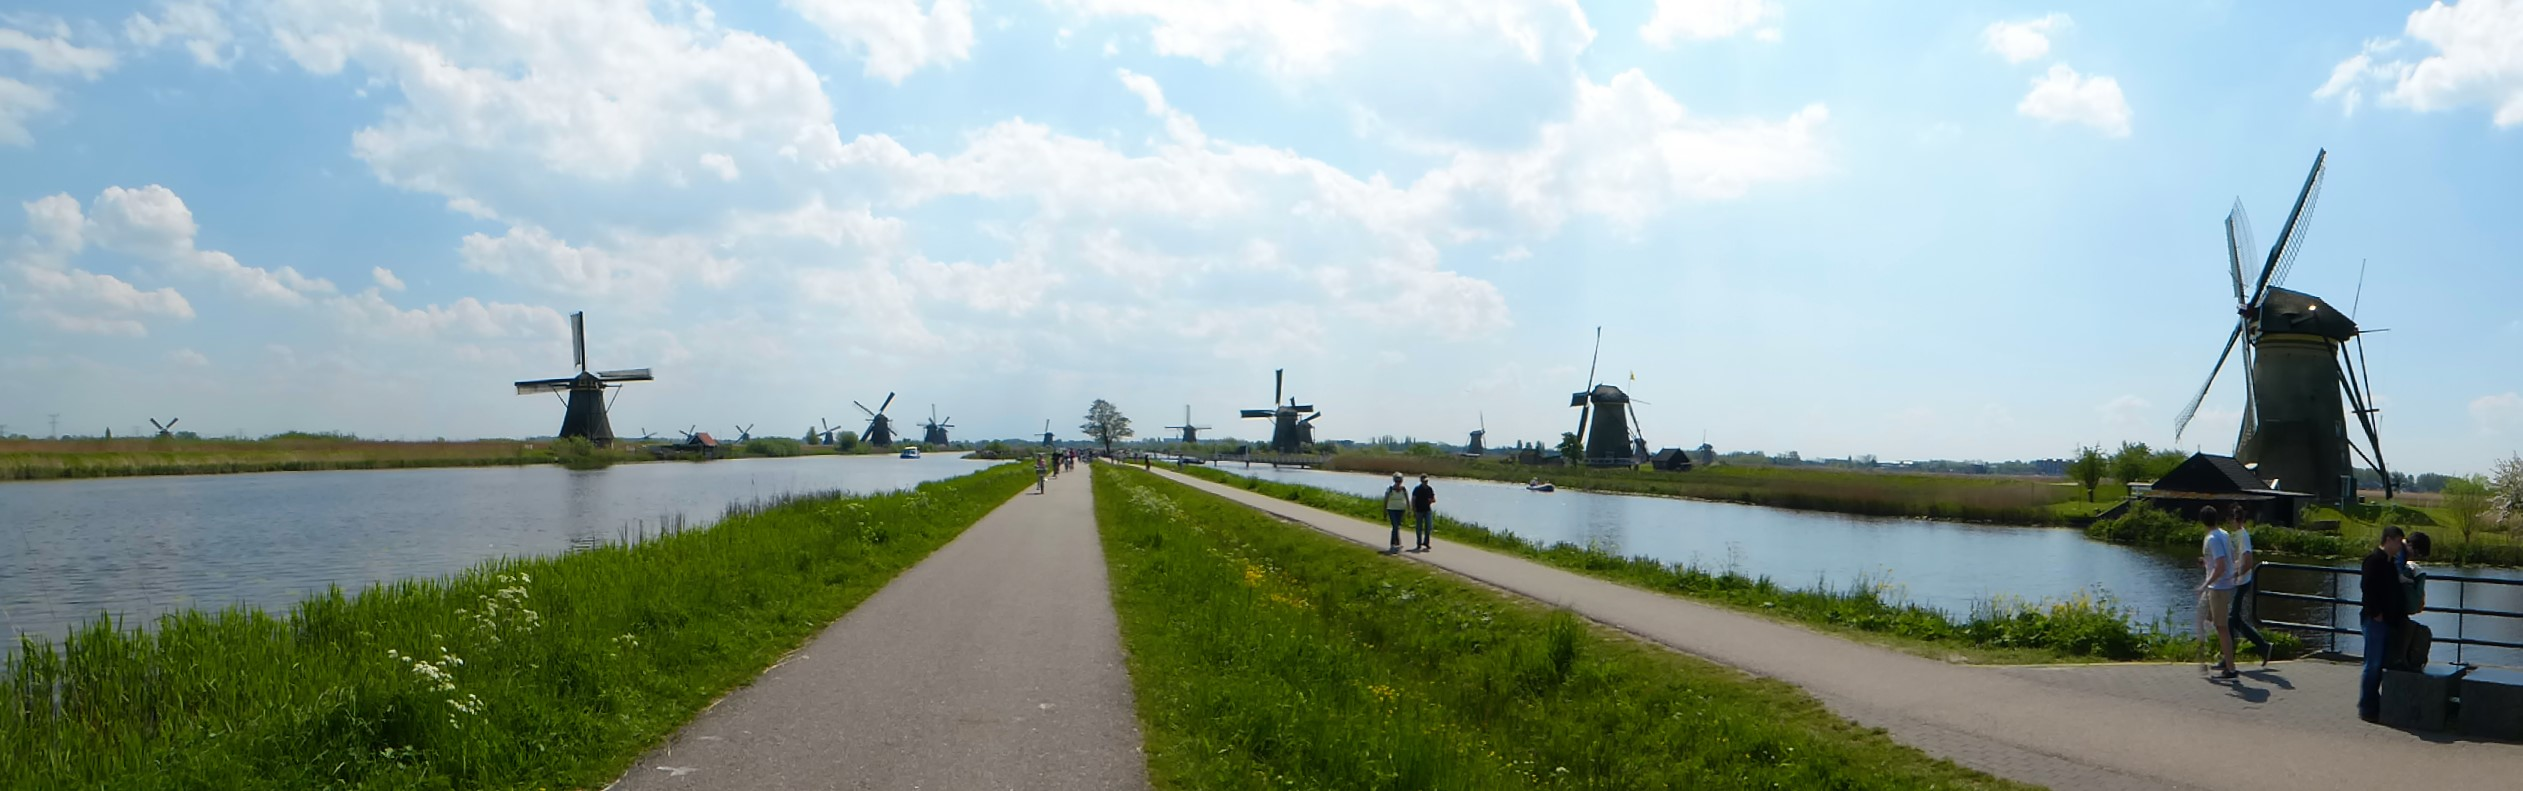 Kinderdijk - The Netherlands